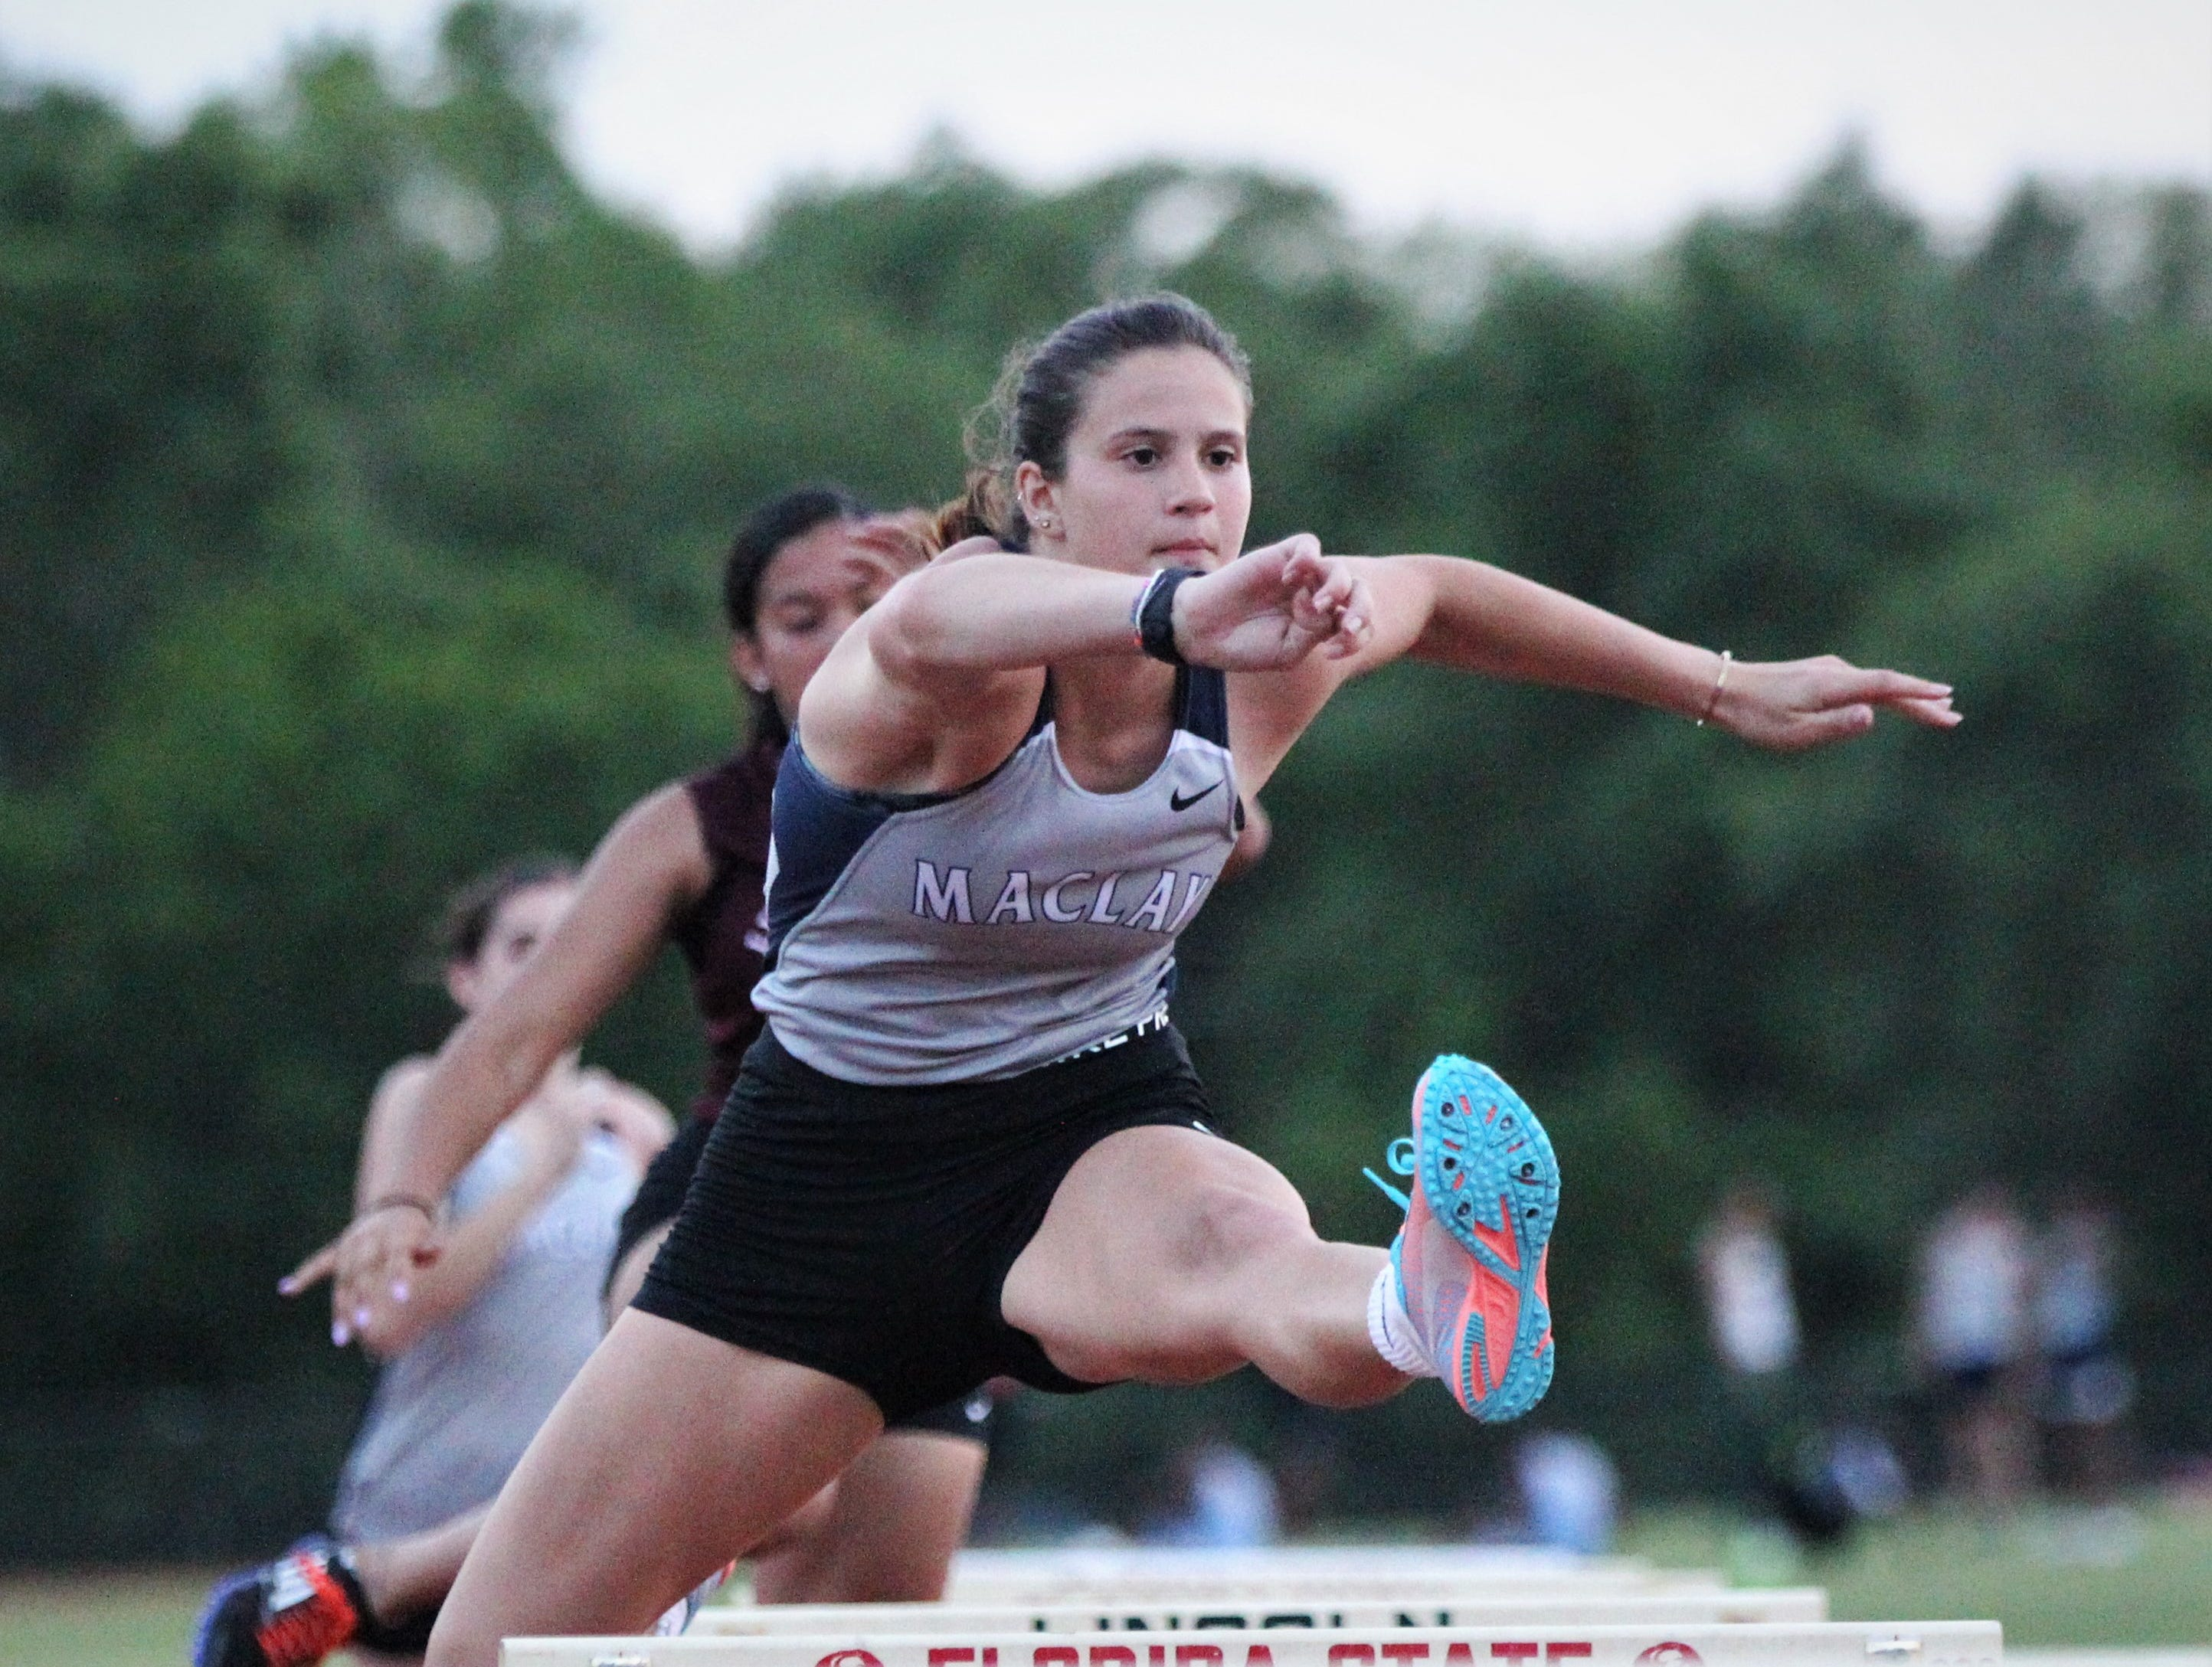 Maclay senior Kenzie Mazziotta clears a hurdle during the District 3-1A and 2-2A track and field meets at Florida High on Saturday, April 13, 2019.